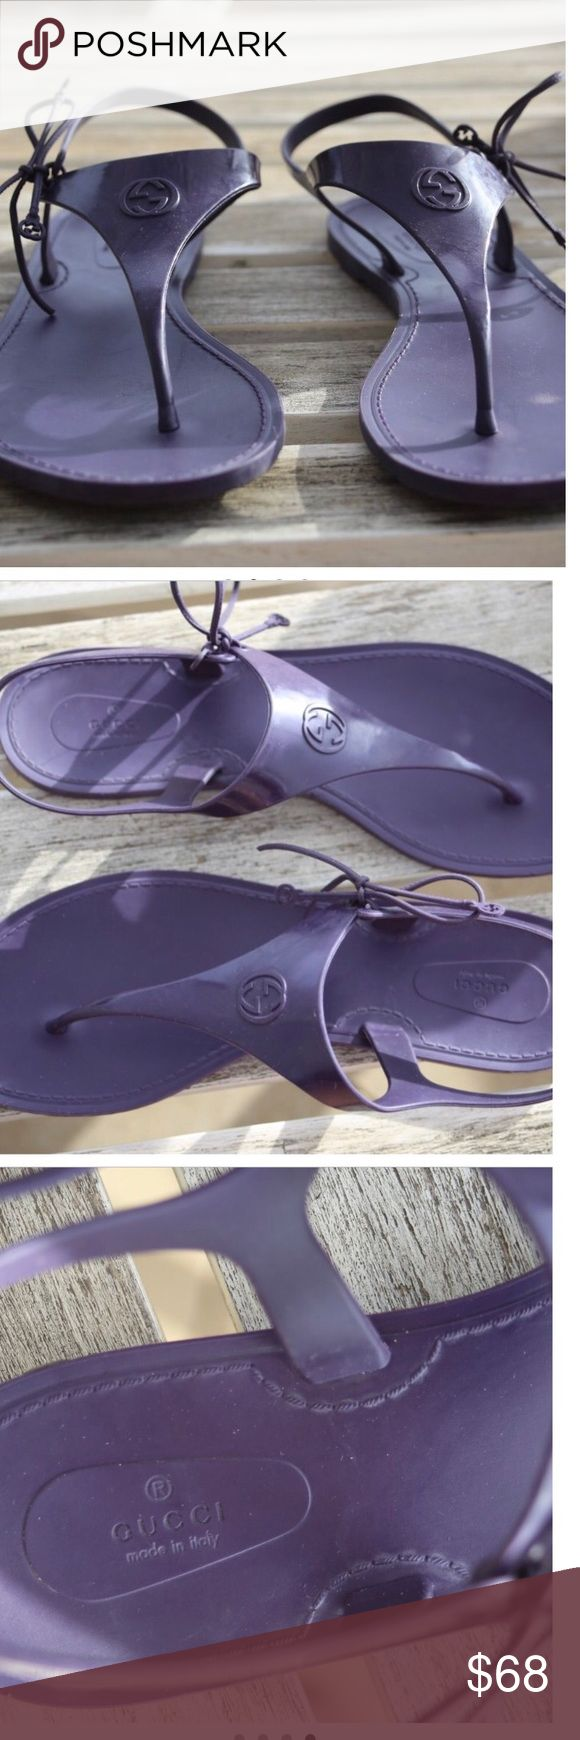 Gucci women's jelly sandals 7.5 Gucci authentic women's jelly/rubber sandals. Size 7.5 color is purple. Slightly used but I'm good condition Gucci Shoes Sandals